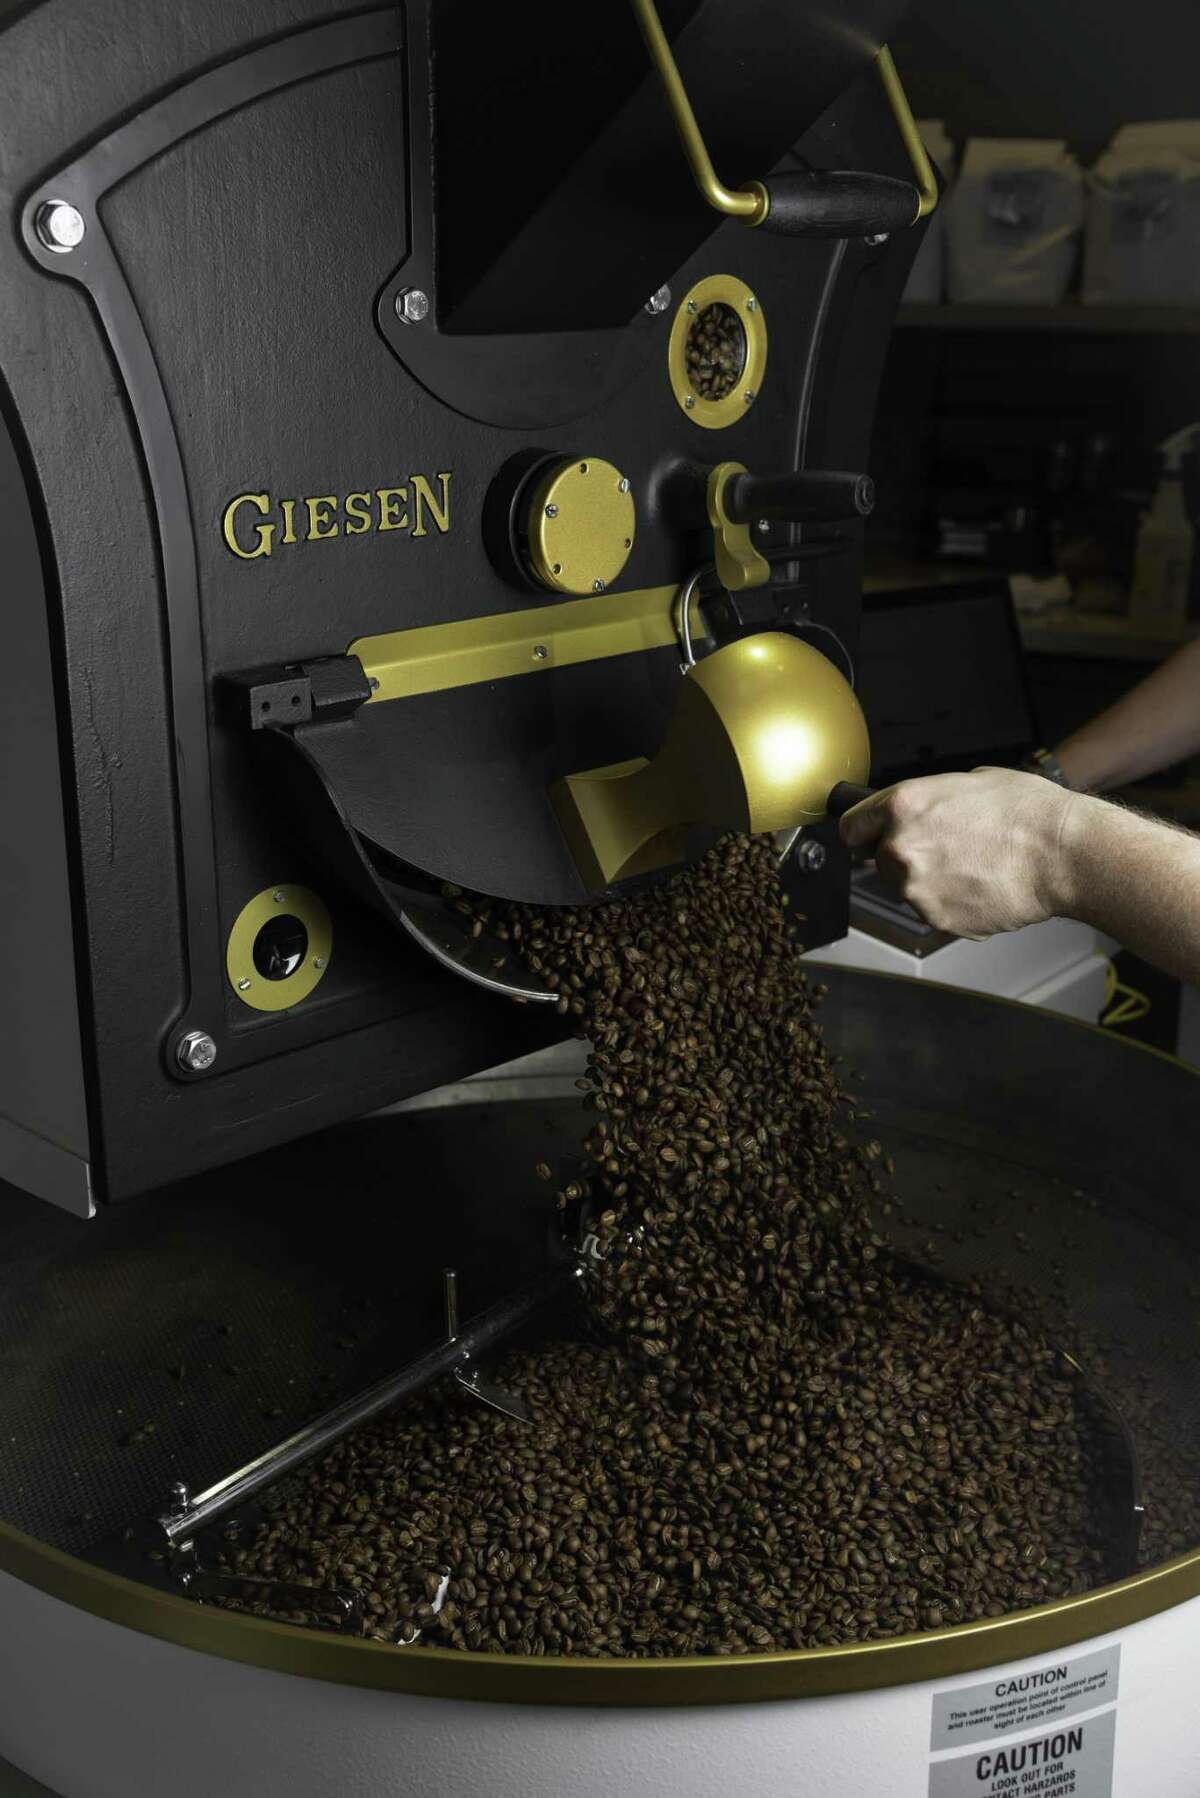 The Roastery Coffee Kitchen continues their expansion in the Houston market with the grand opening of its third location, attached to the H-E-Bat 5895 San Felipe St. today, Monday, April 8, 2019. The concept, which was launched last year by Jason Giagrande who is part of the esteemed FOUR J team along with chefs Jonathan Waxman, Jimmy Bradley and Joey Campanaro, who have been working with H-E-B developing products over the last six years.